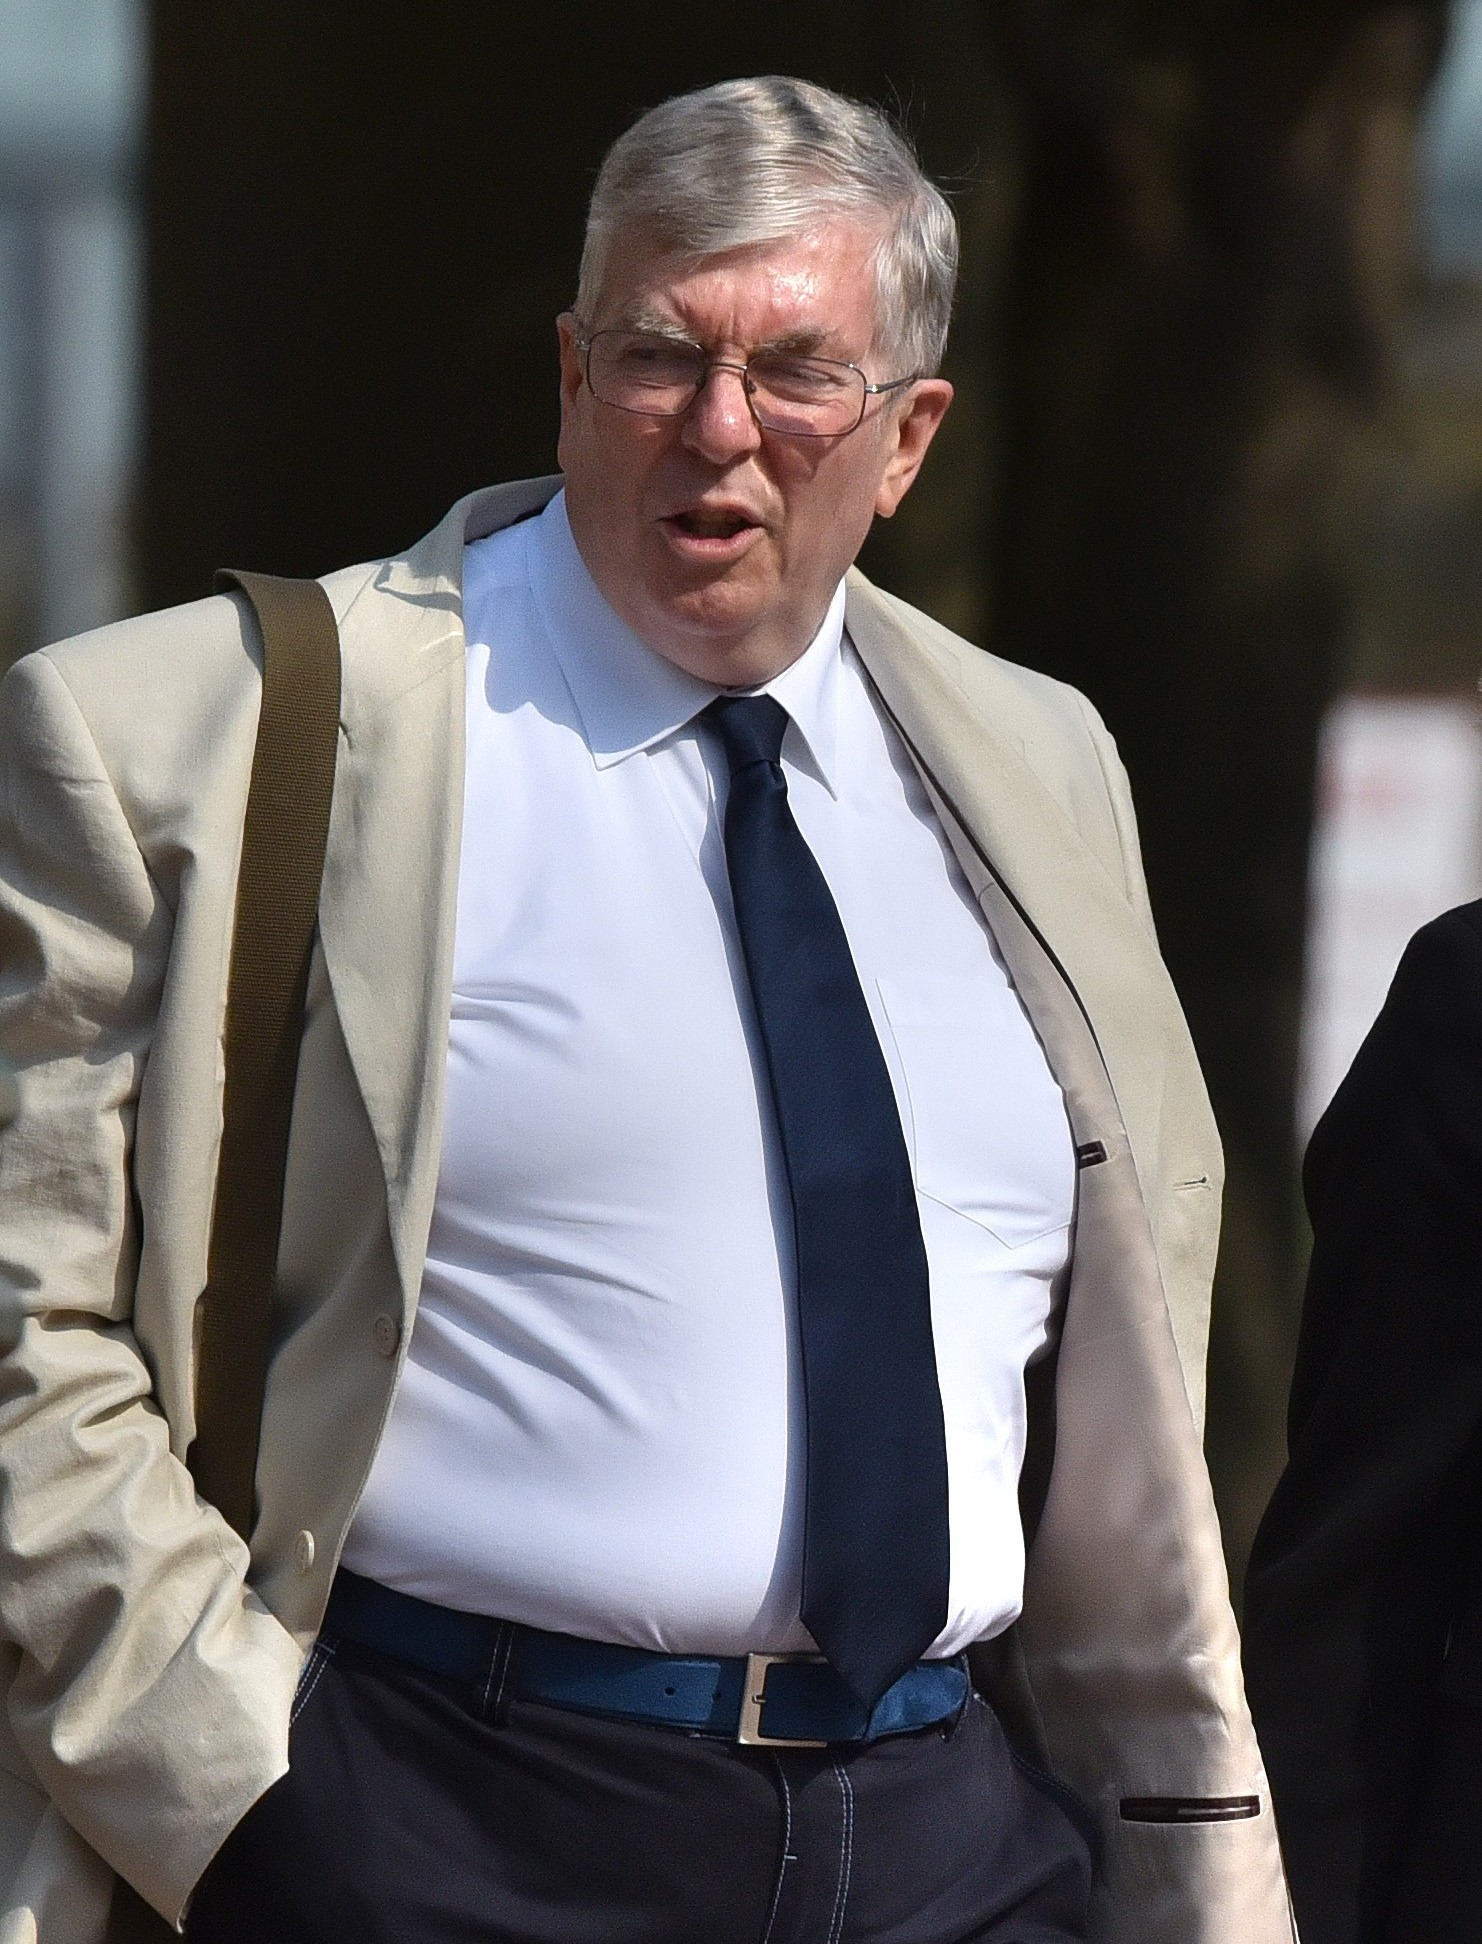 Graham Doyle, 69, was unanimously found not guilty of two counts of indecent assault